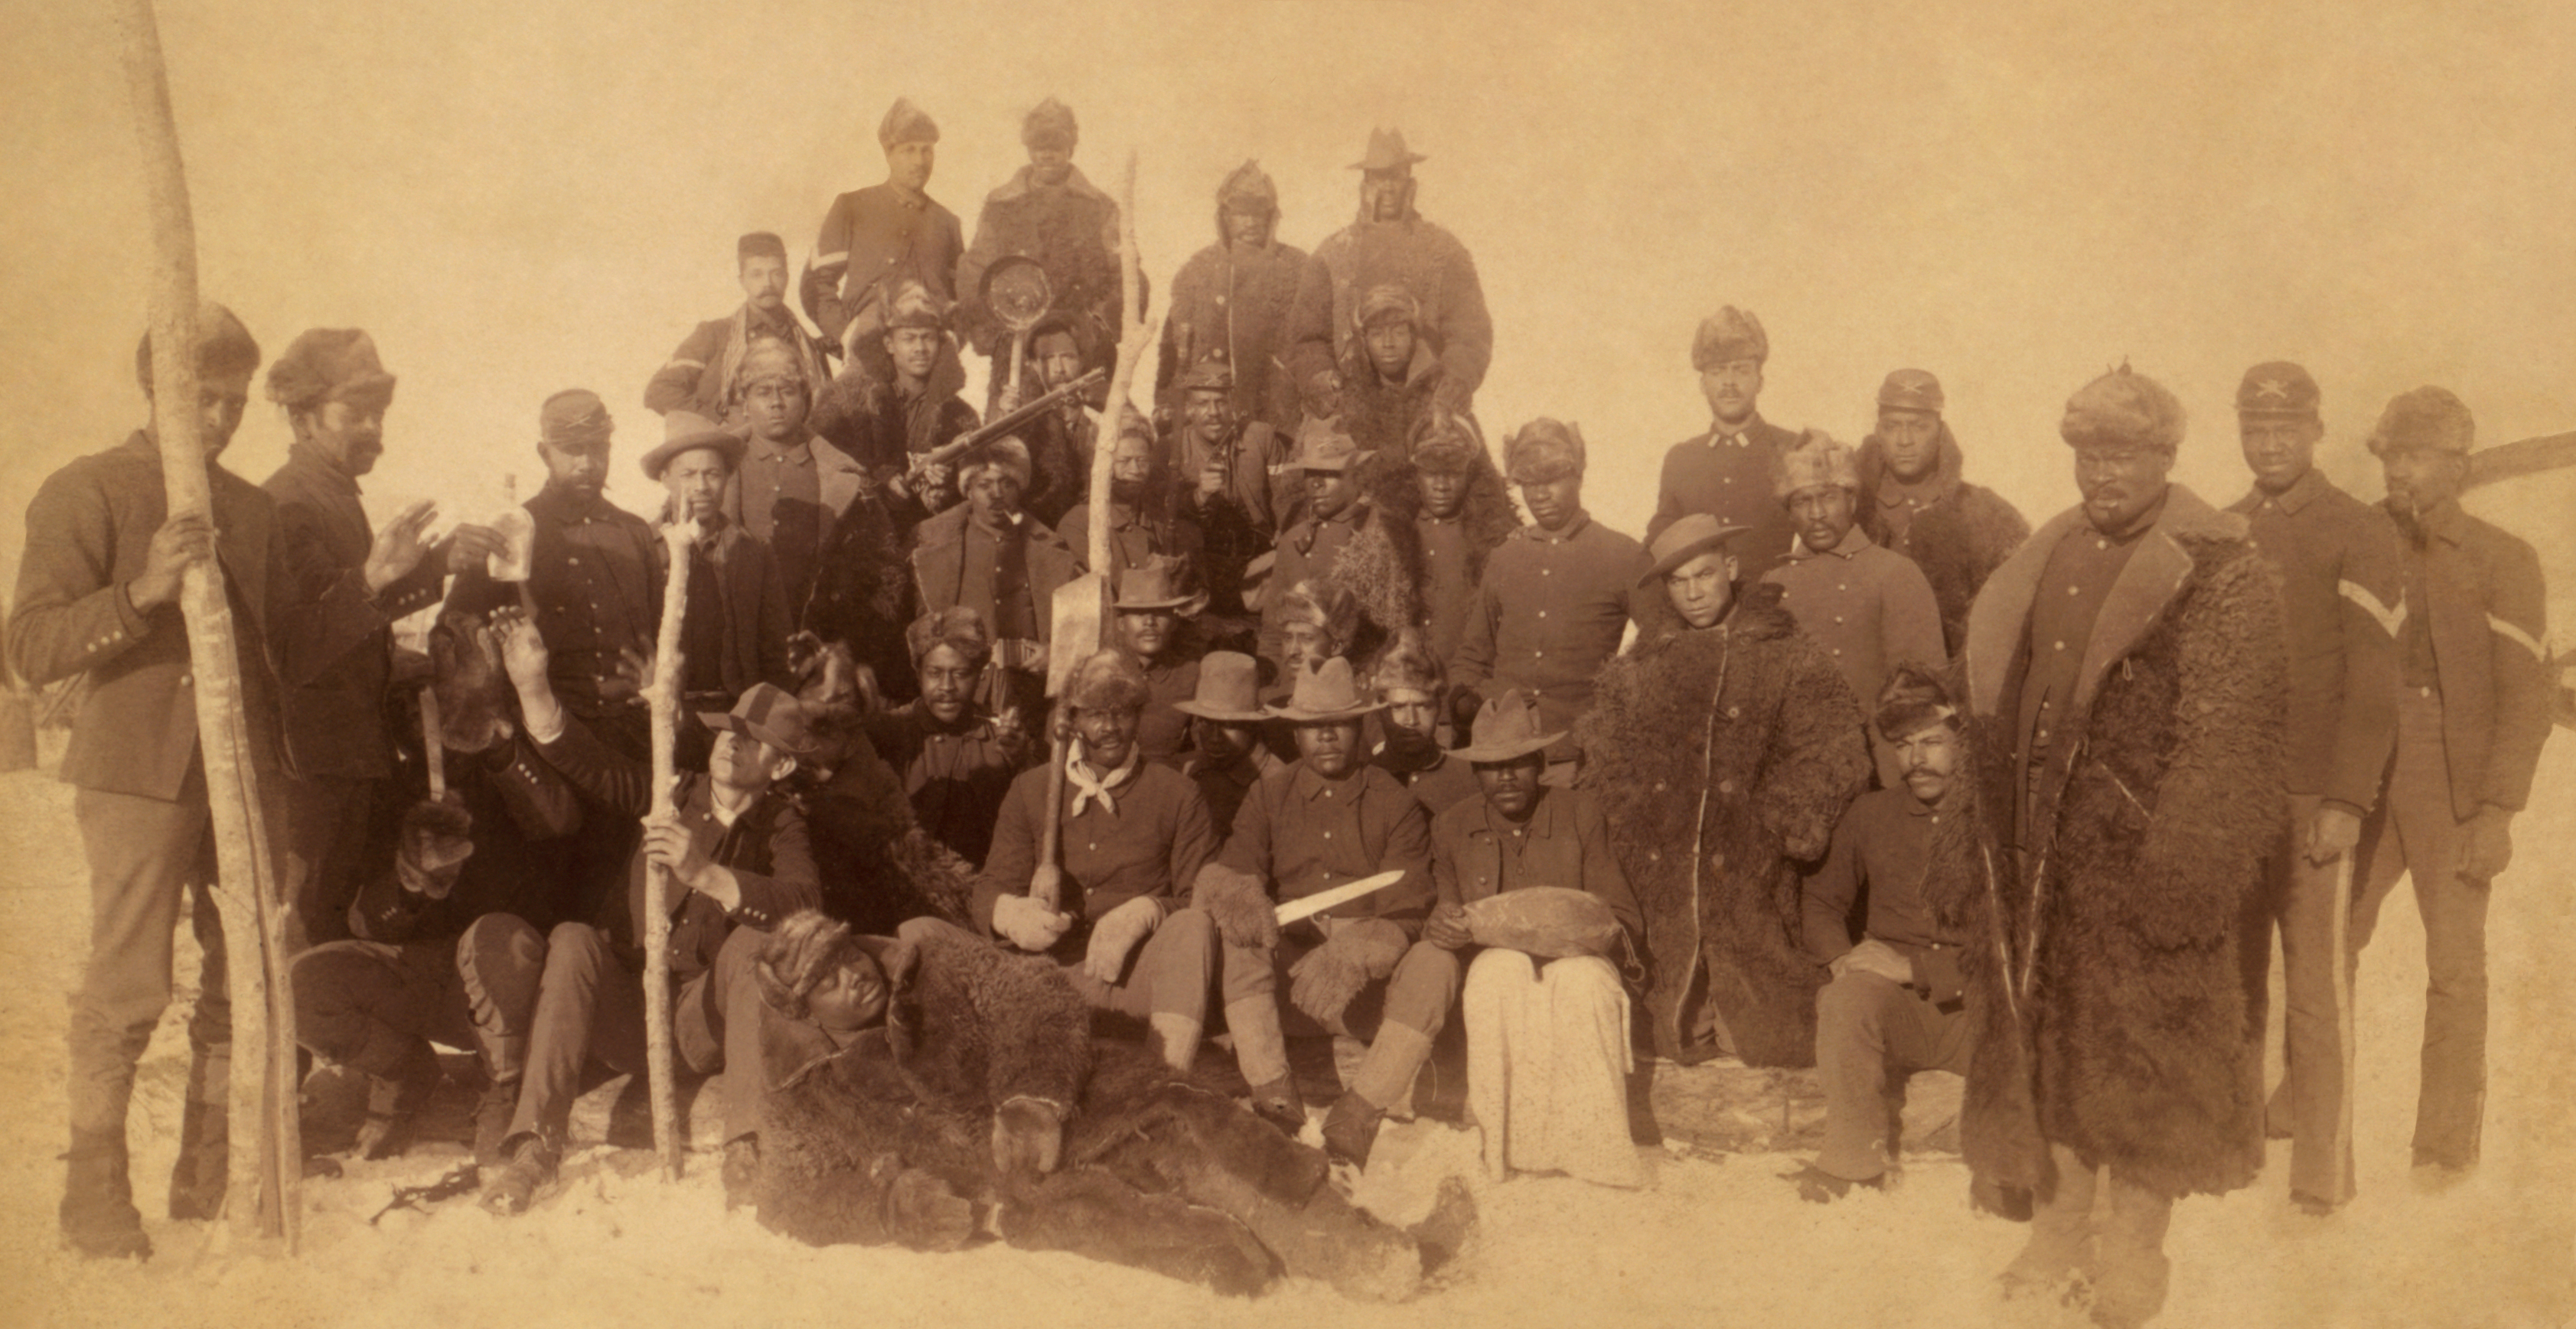 Description Buffalo soldiers1.jpg